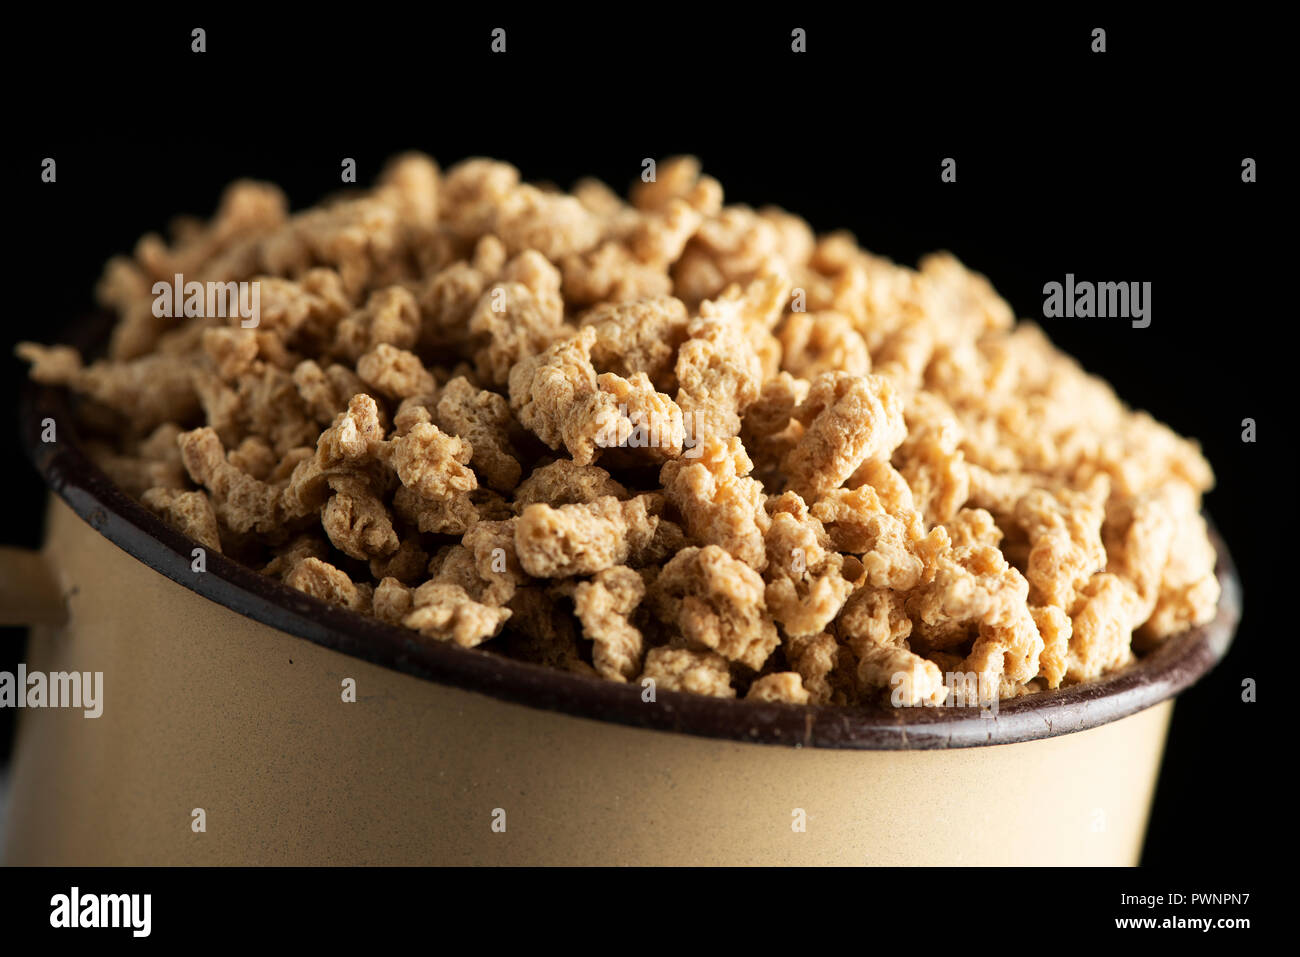 closeup of an old beige enamelware pot full of chunks of textured soy protein, against a black background - Stock Image